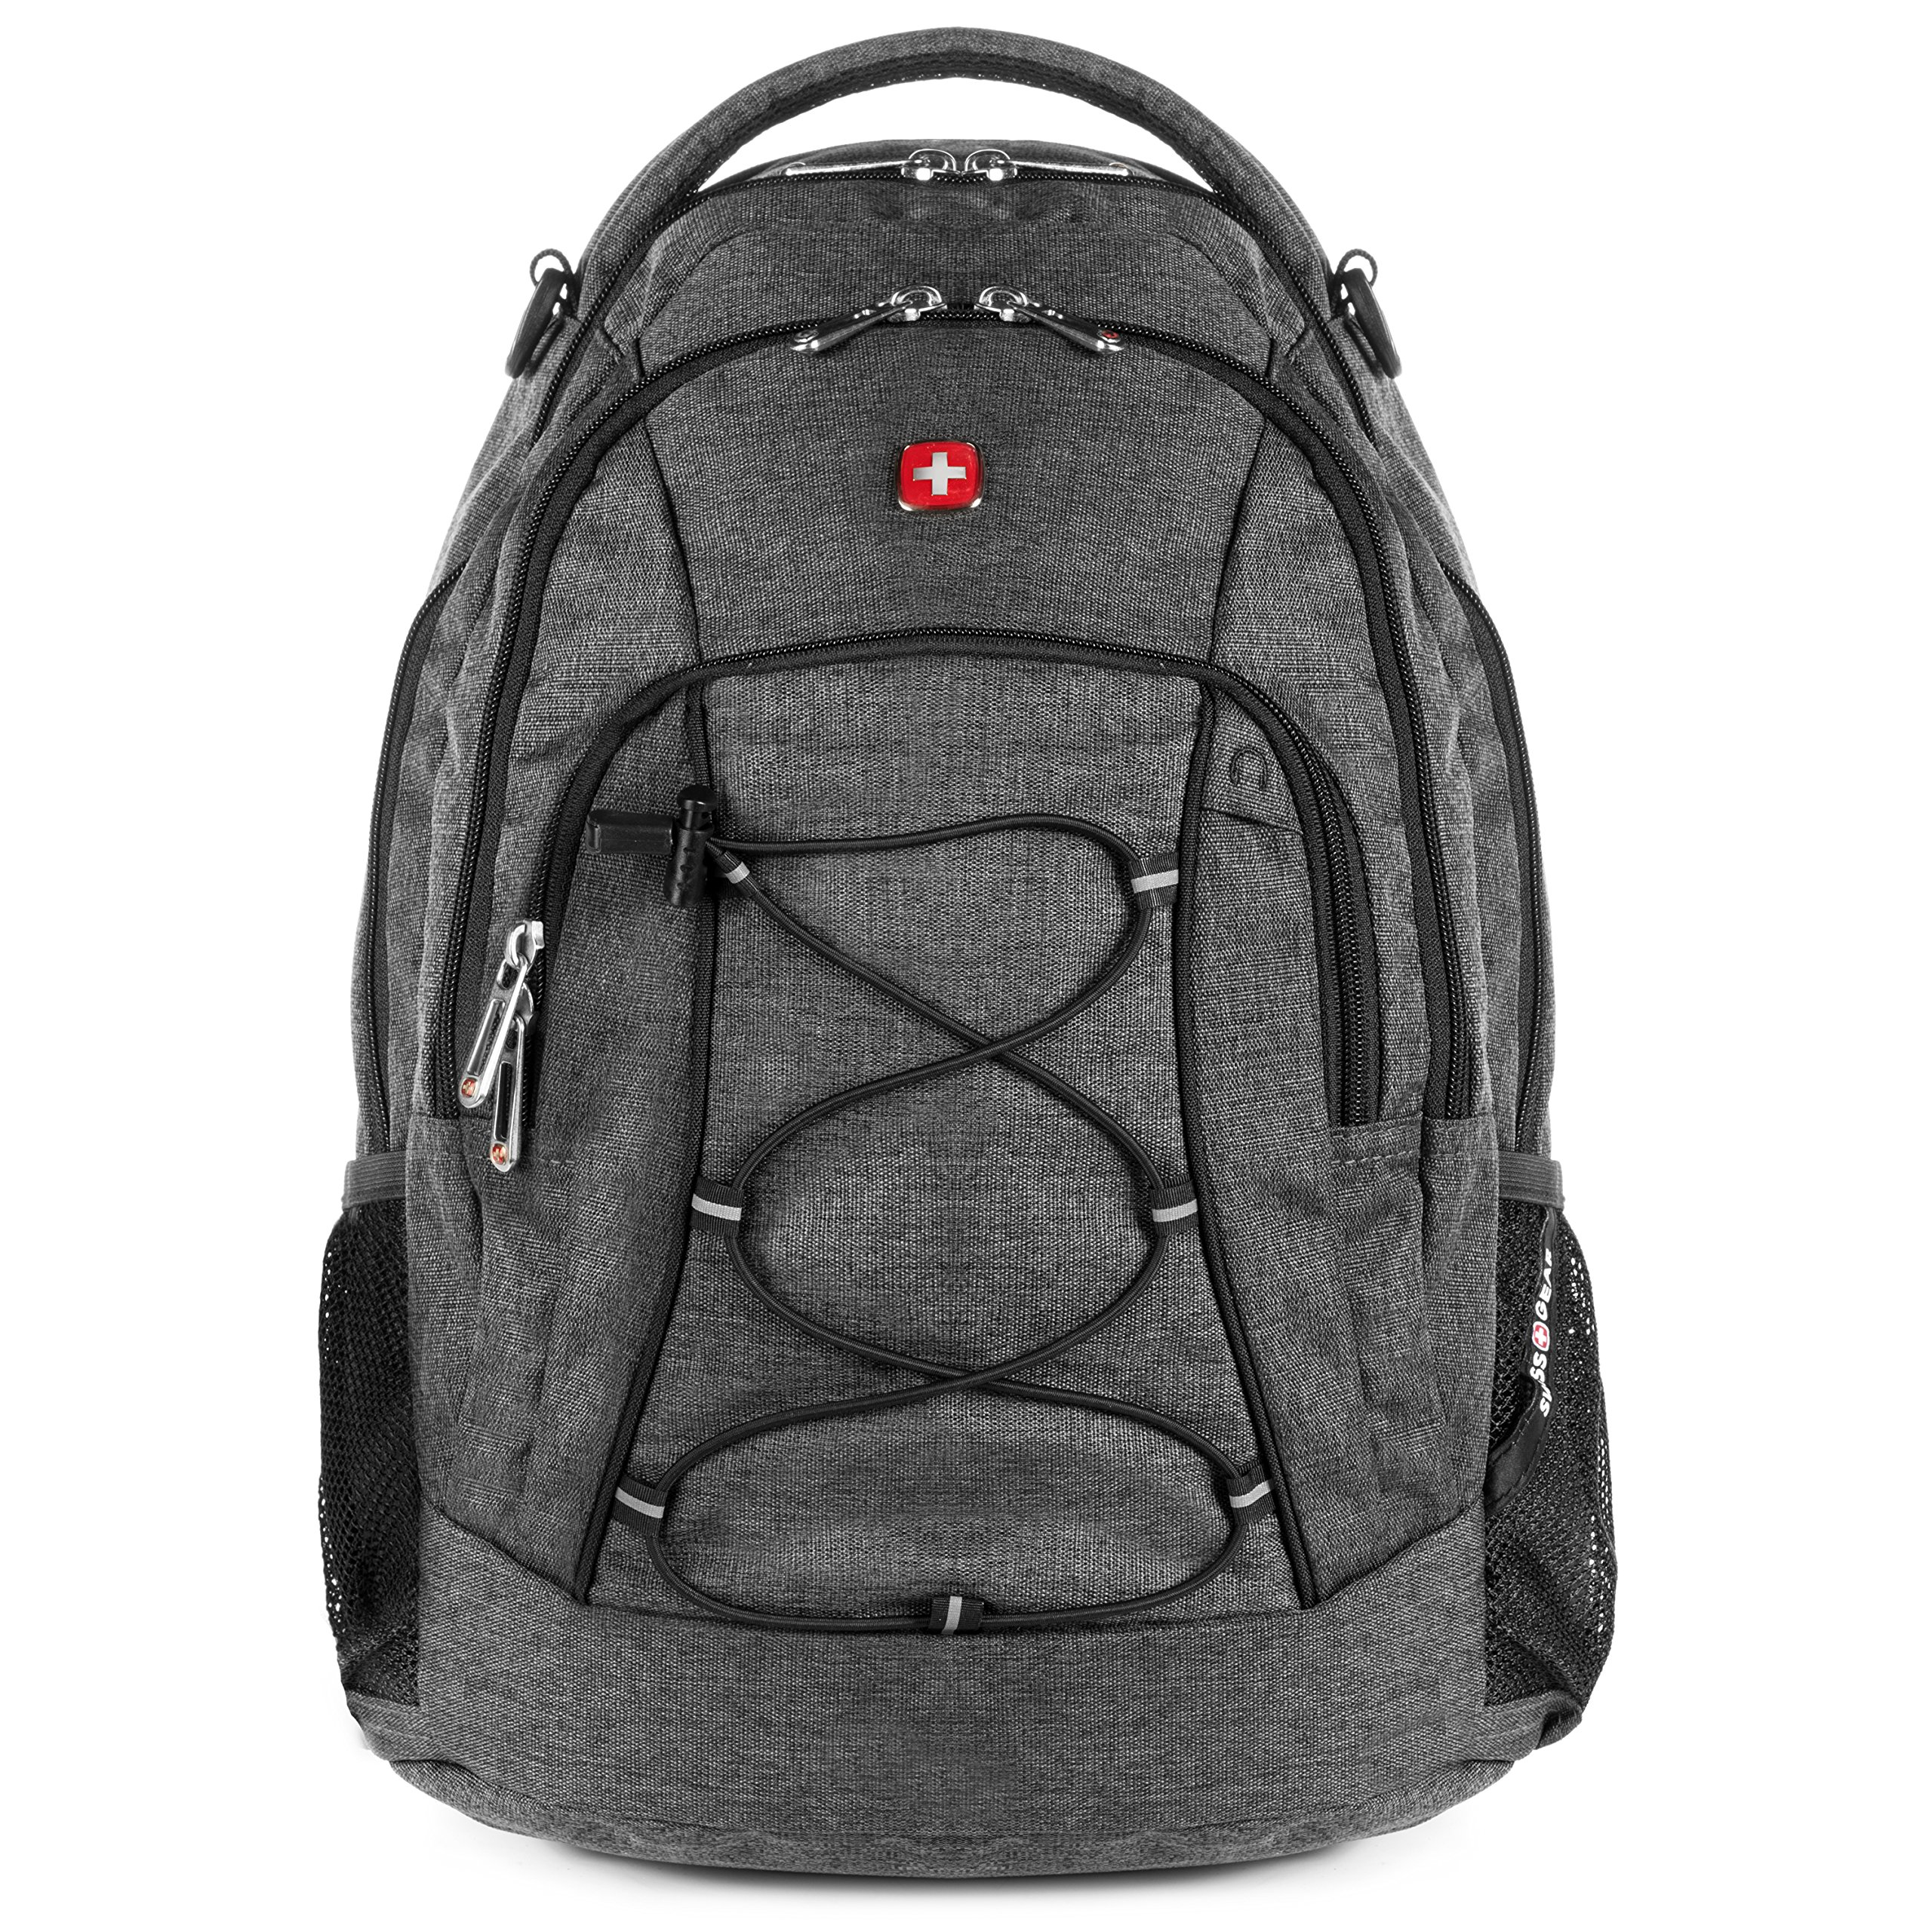 SWISSGEAR 1186 Laptop Backpack (Heather Gray) by Swiss Gear